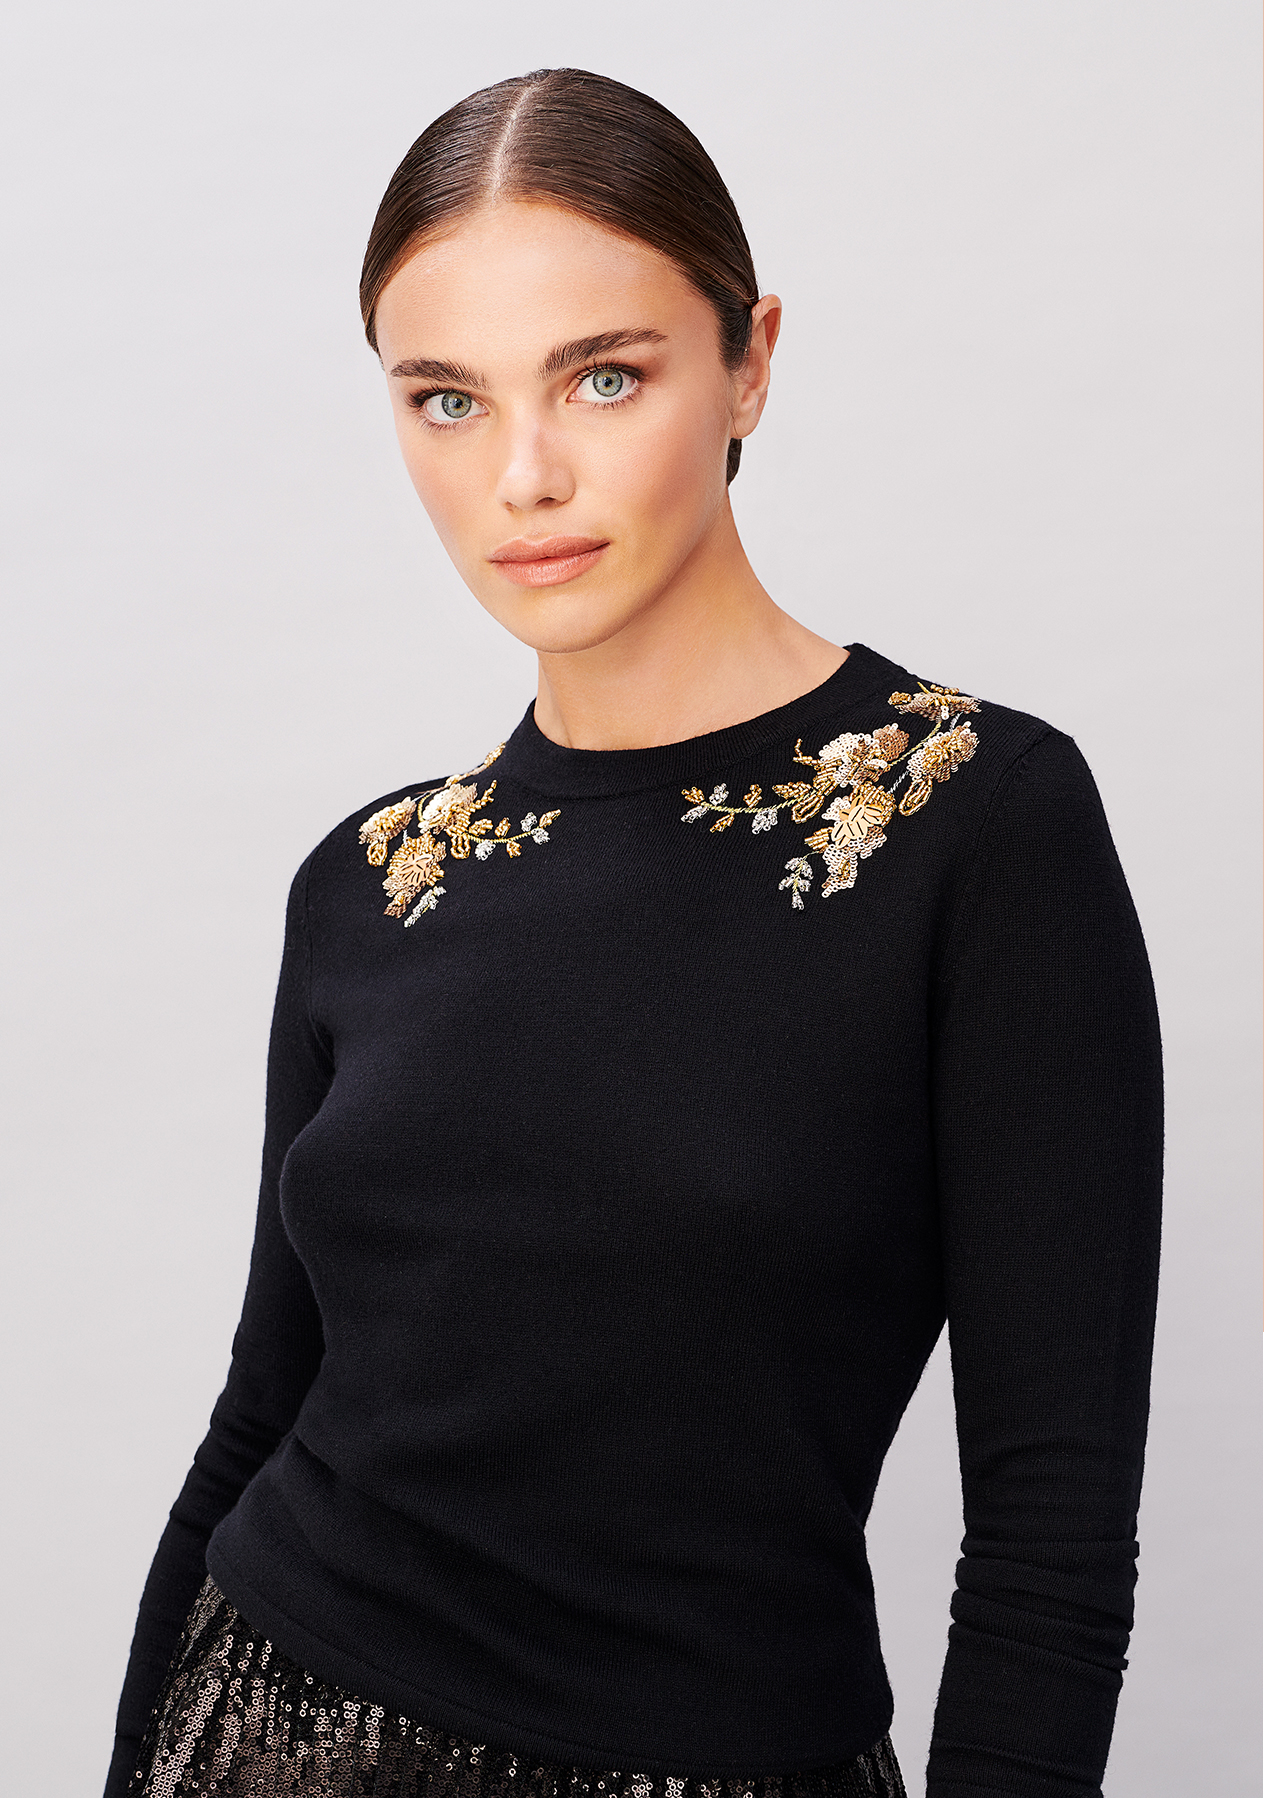 Close-up image of model wearing a black jumper with a gold embellished neckline.